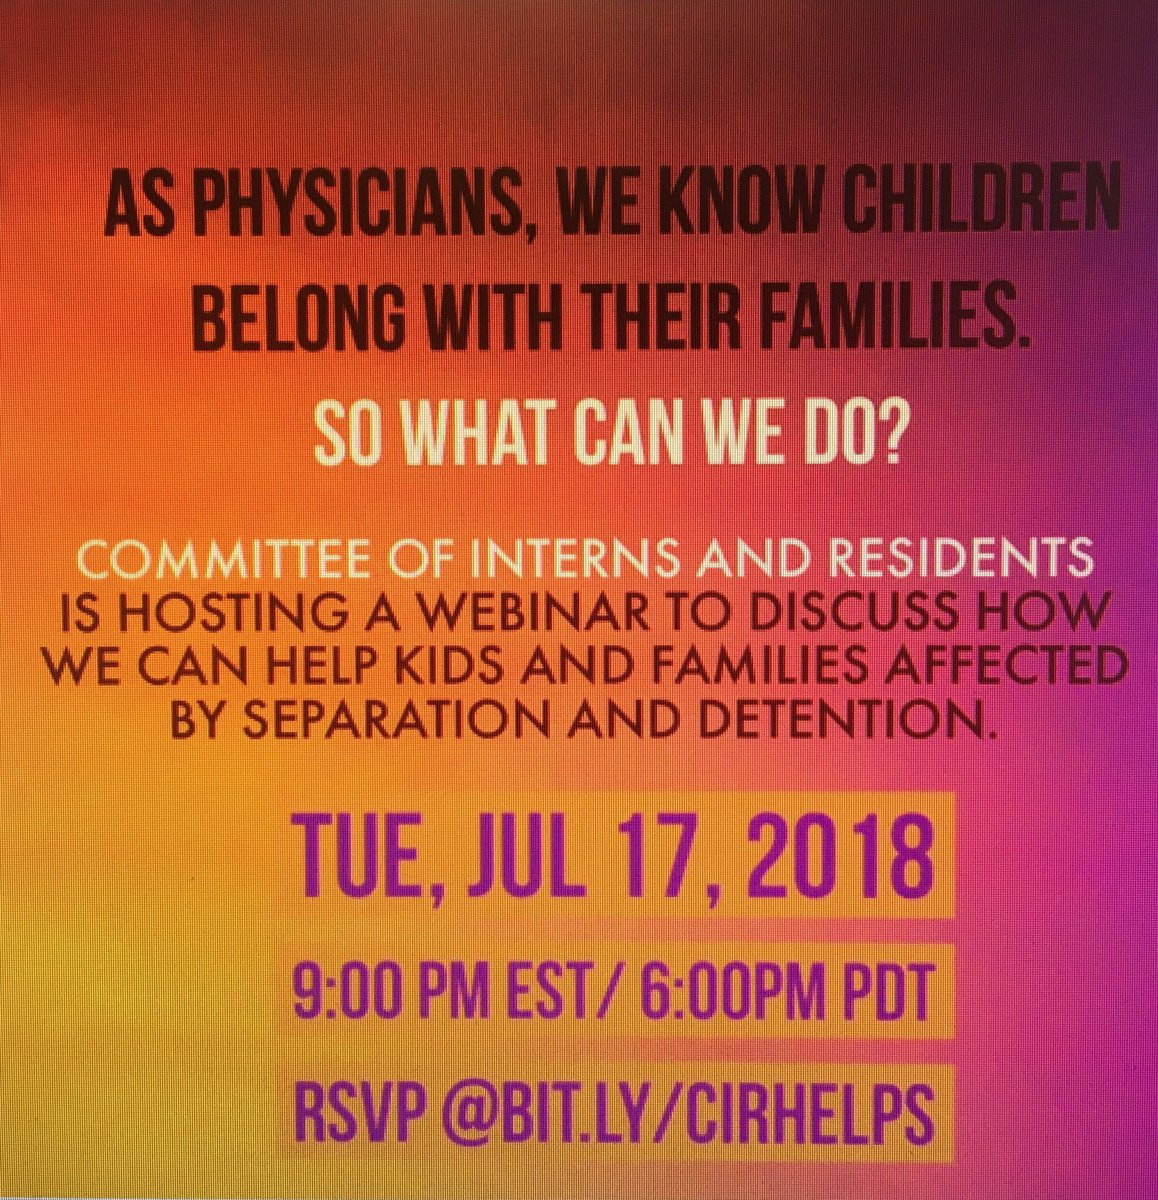 Upcoming webinar for physicians interested in learning how to help with separated kids and families @NHMAmd @NHMACOR @NHMACYP @EmergencyDocs @AAAP1985<br>http://pic.twitter.com/2hfQax4d8c